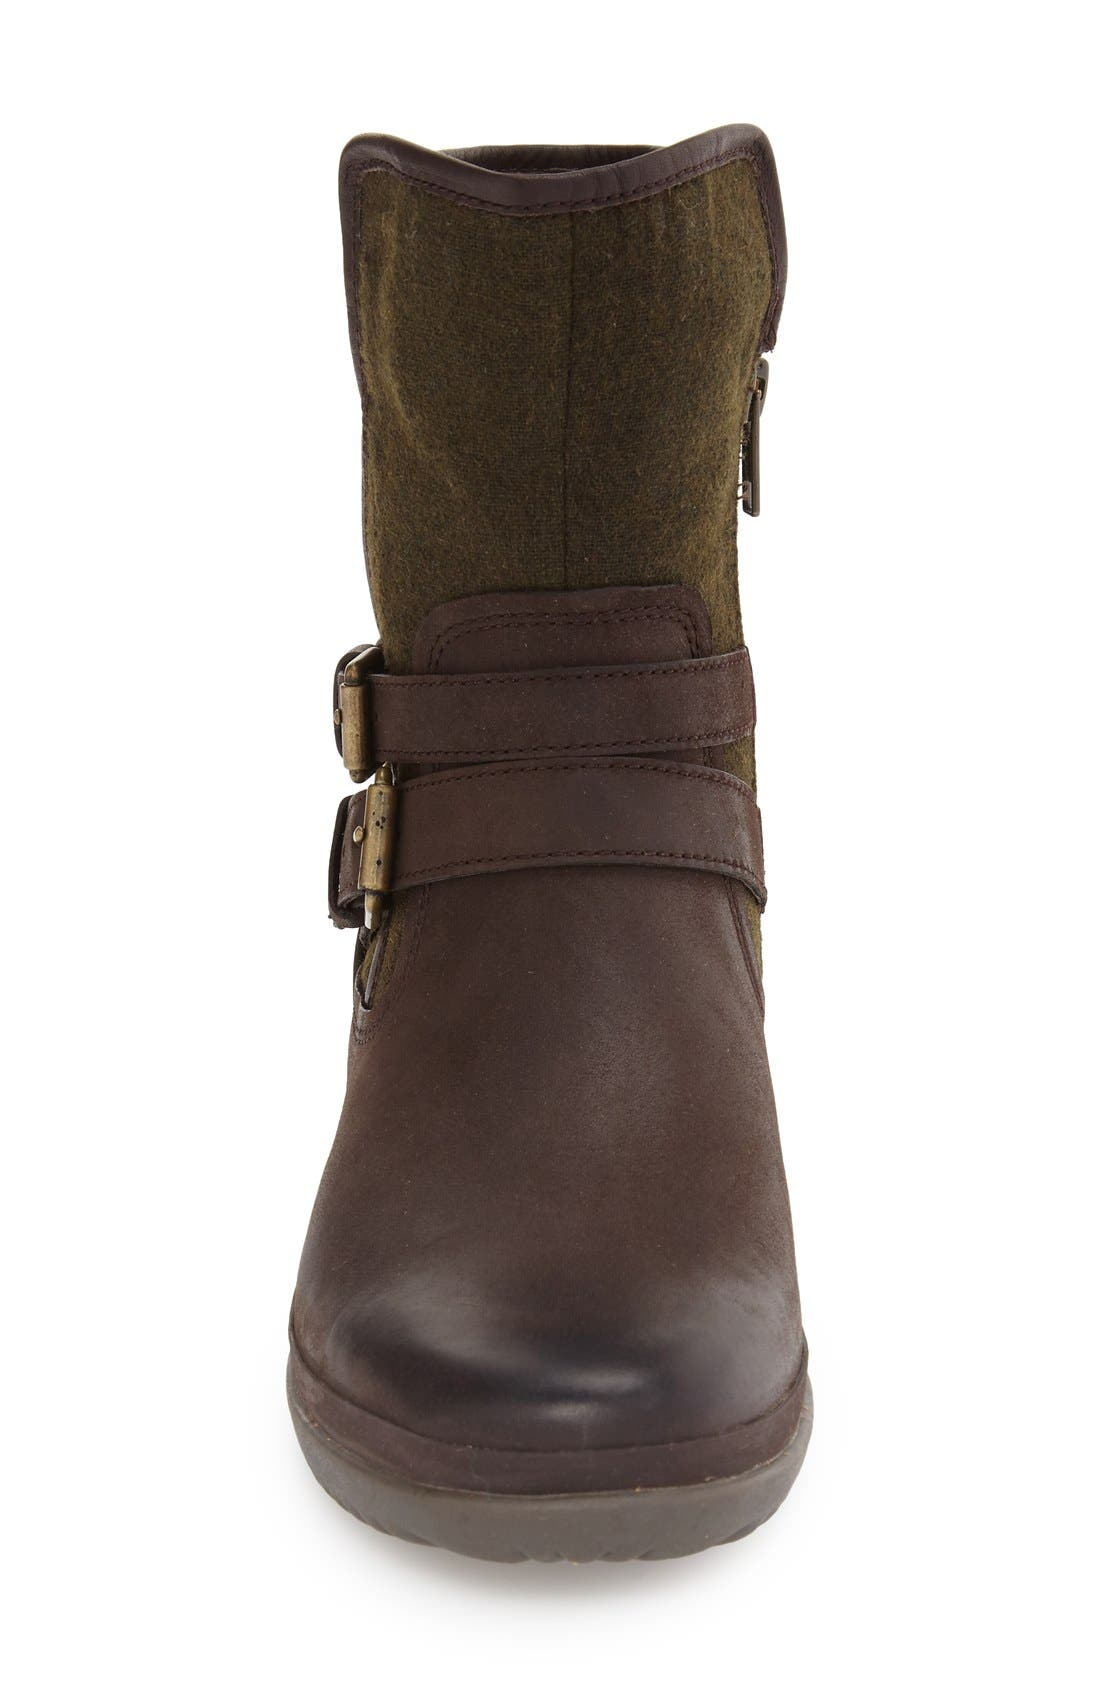 UGG<SUP>®</SUP>, Simmens Waterproof Leather Boot, Alternate thumbnail 2, color, STOUT WOOL